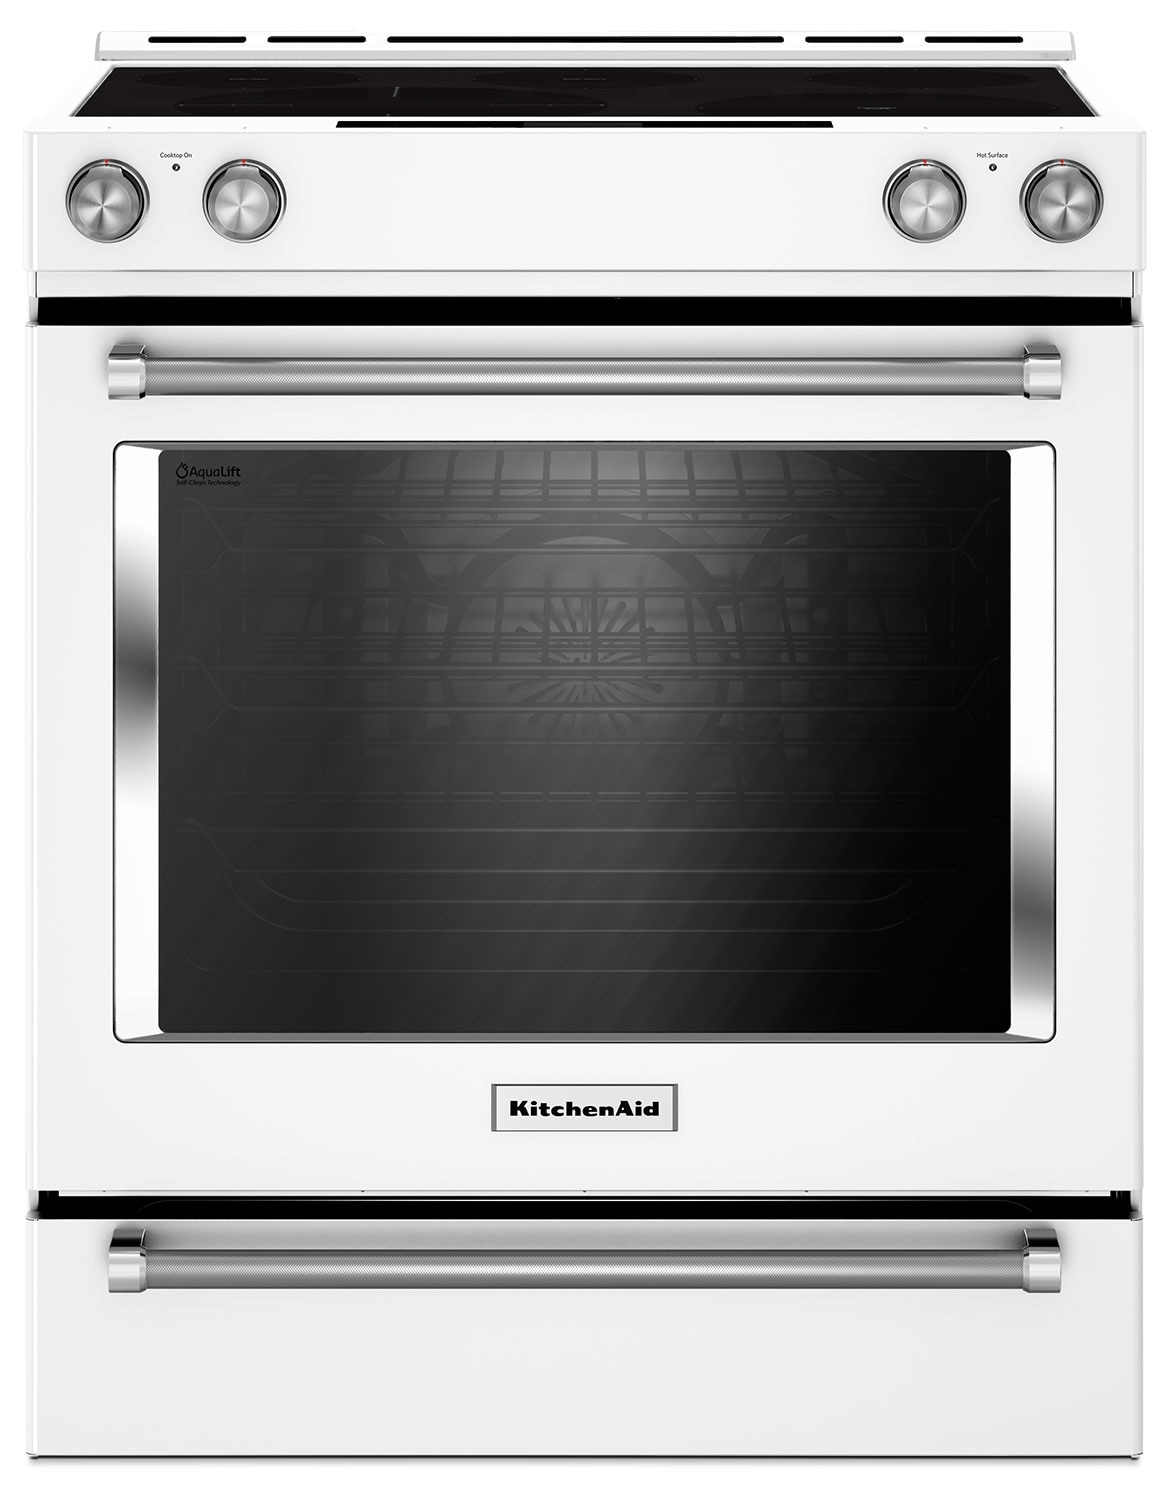 KitchenAid 7.1 Cu. Ft. Slide-In Convection Range with Baking ...